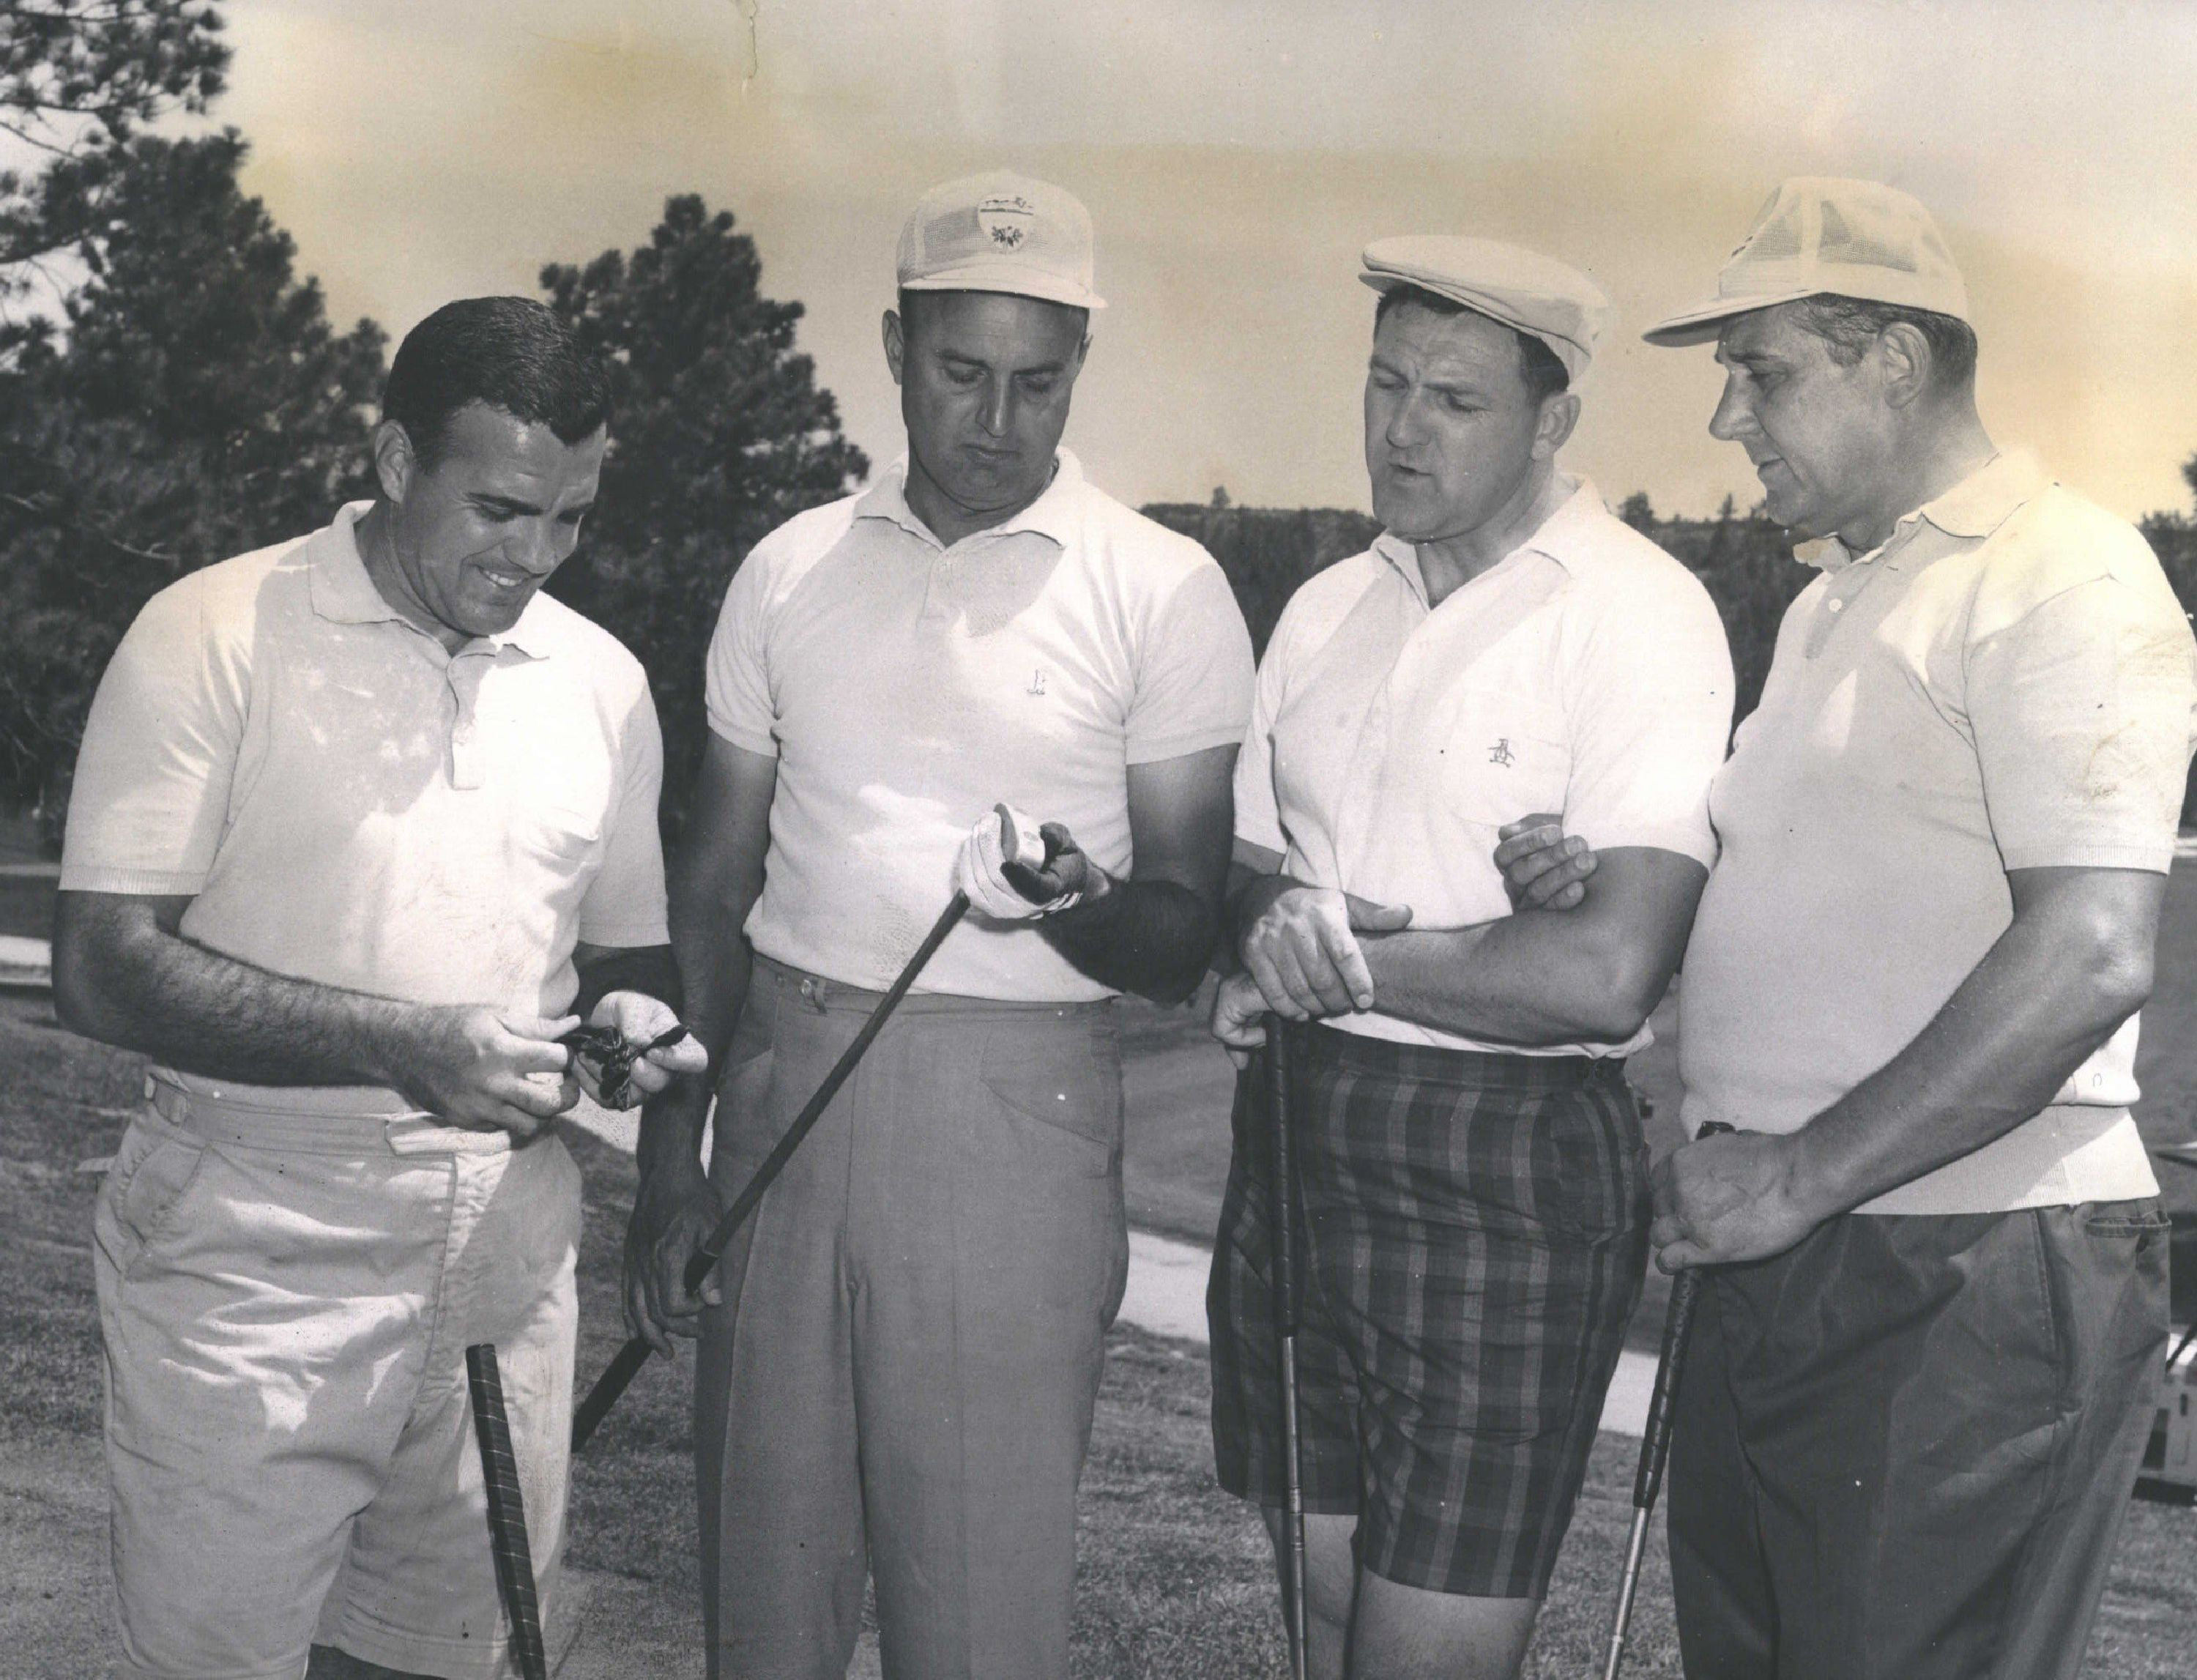 JUL 28 1964; Falcons, Irish Get Together On Links; After the business new football schedules between